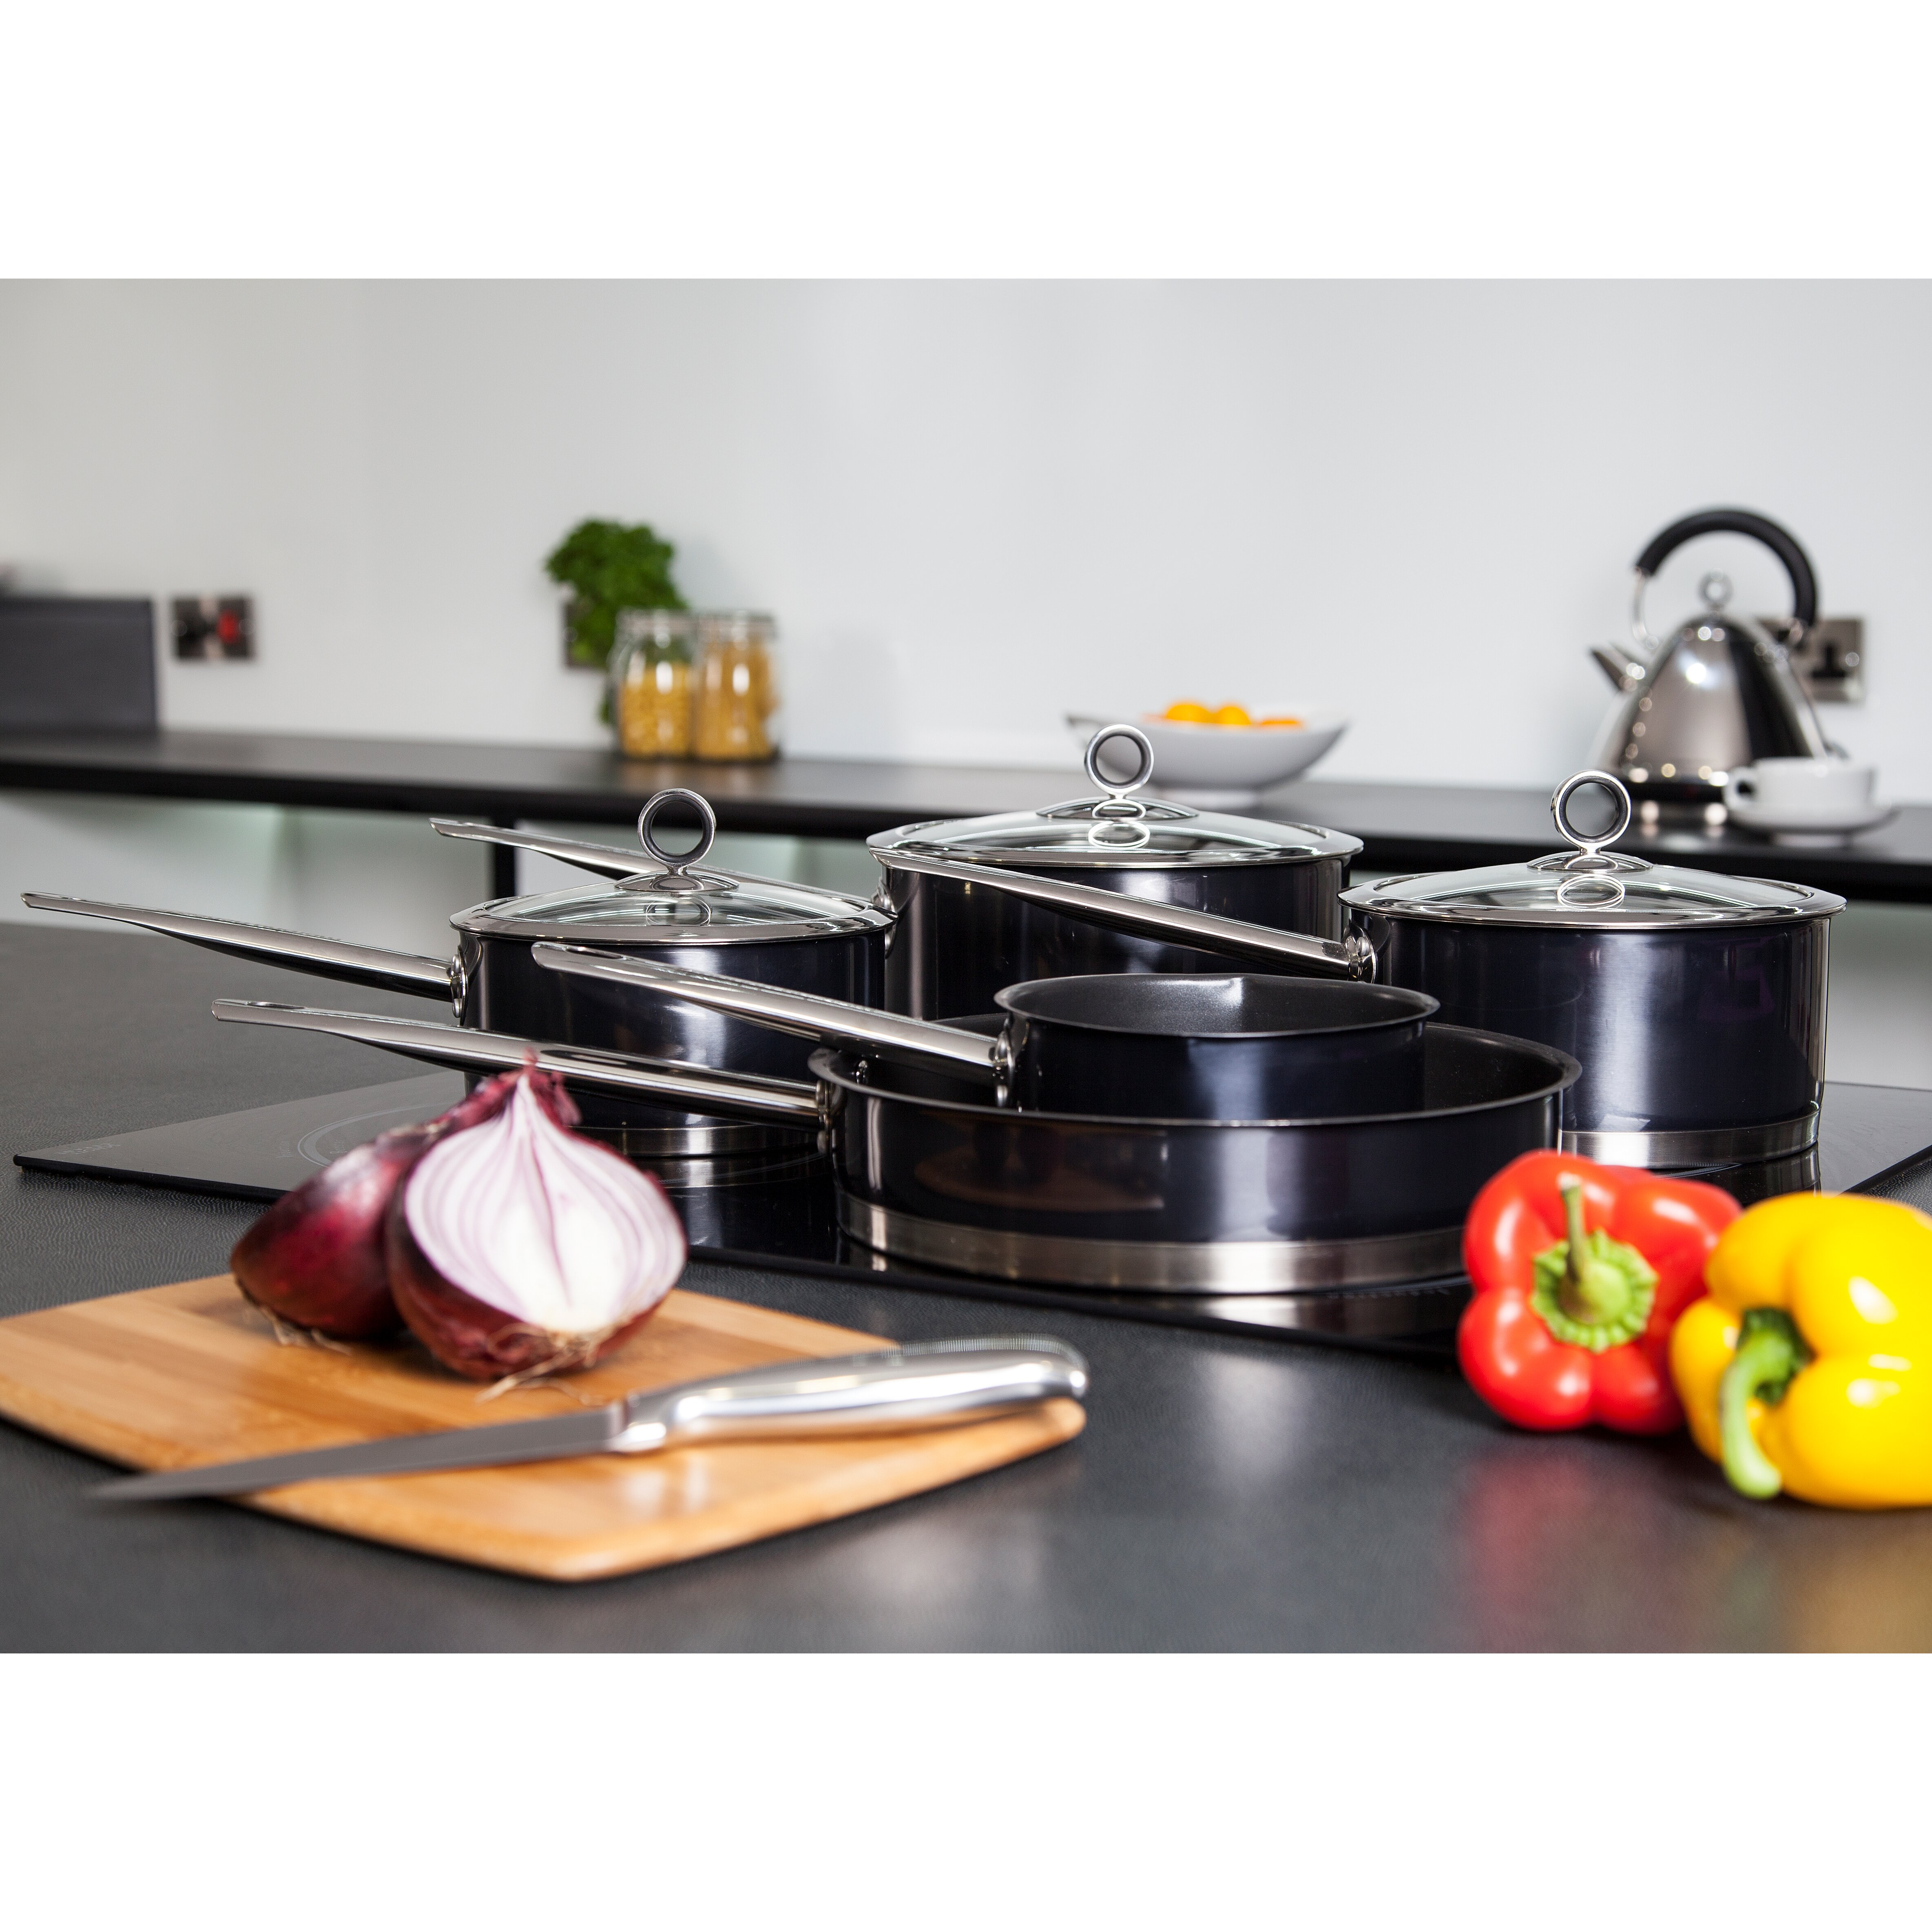 Morphy Richards Pots And Pans: Morphy Richards Accents 5-Piece Non-Stick Stainless Steel